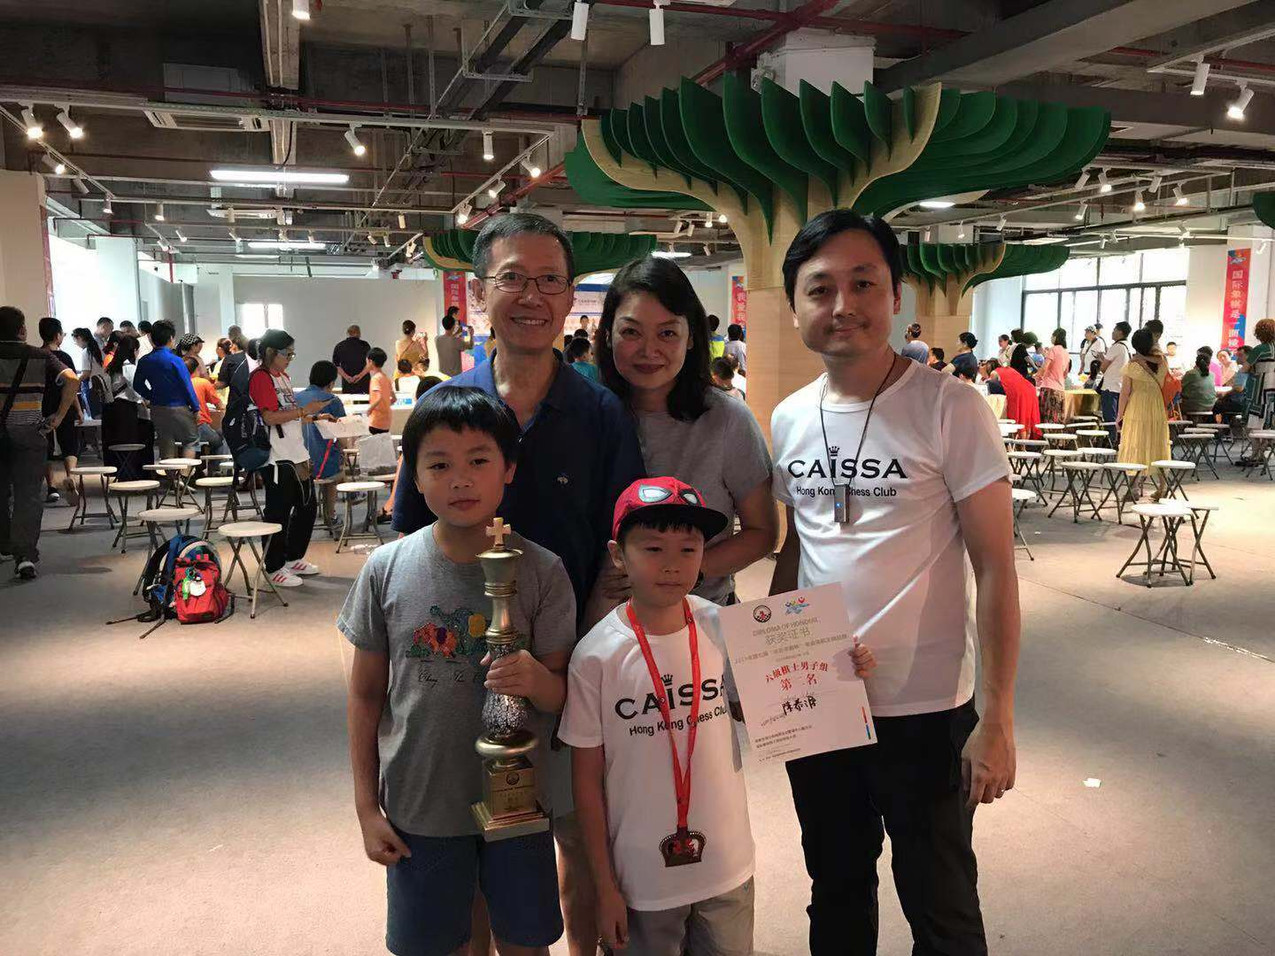 Lam and Chan family in Shenzhen chess